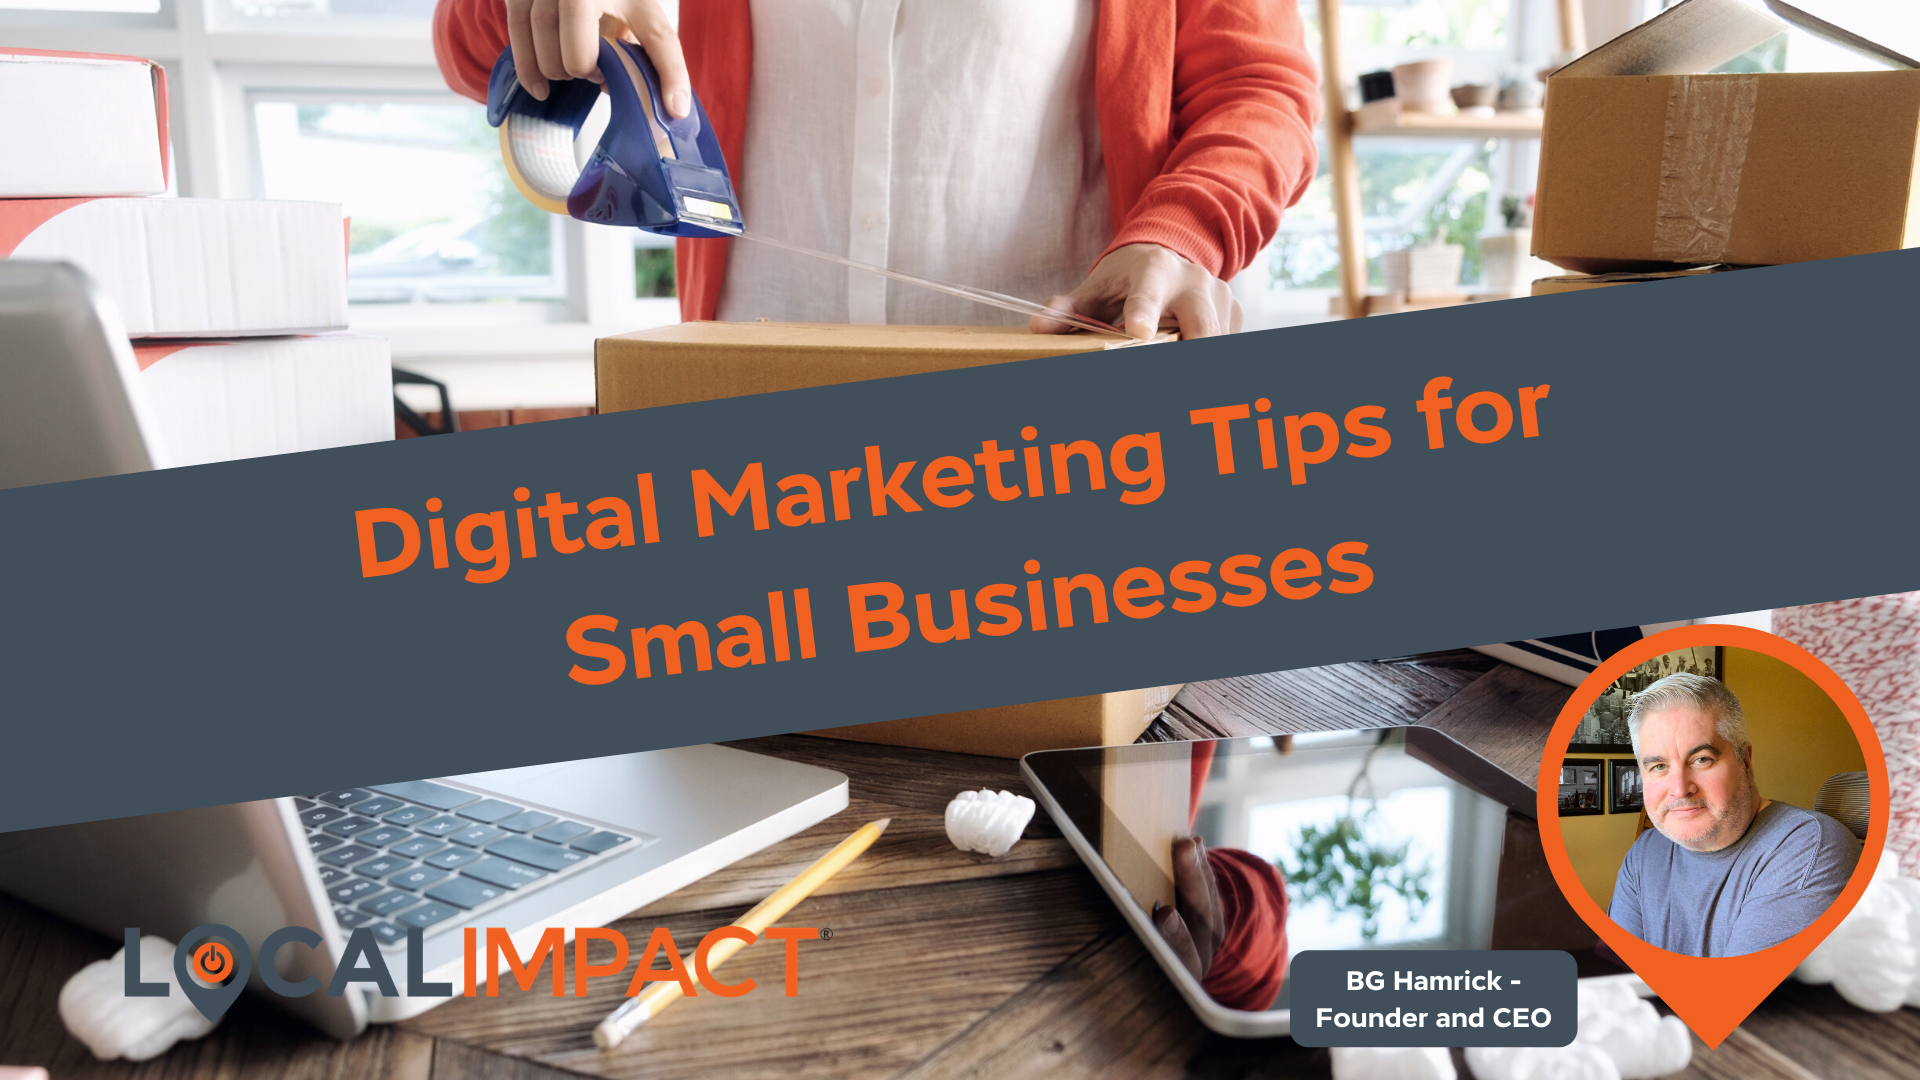 Digital Marketing Tips for Small Businesses - Local Impact Blog